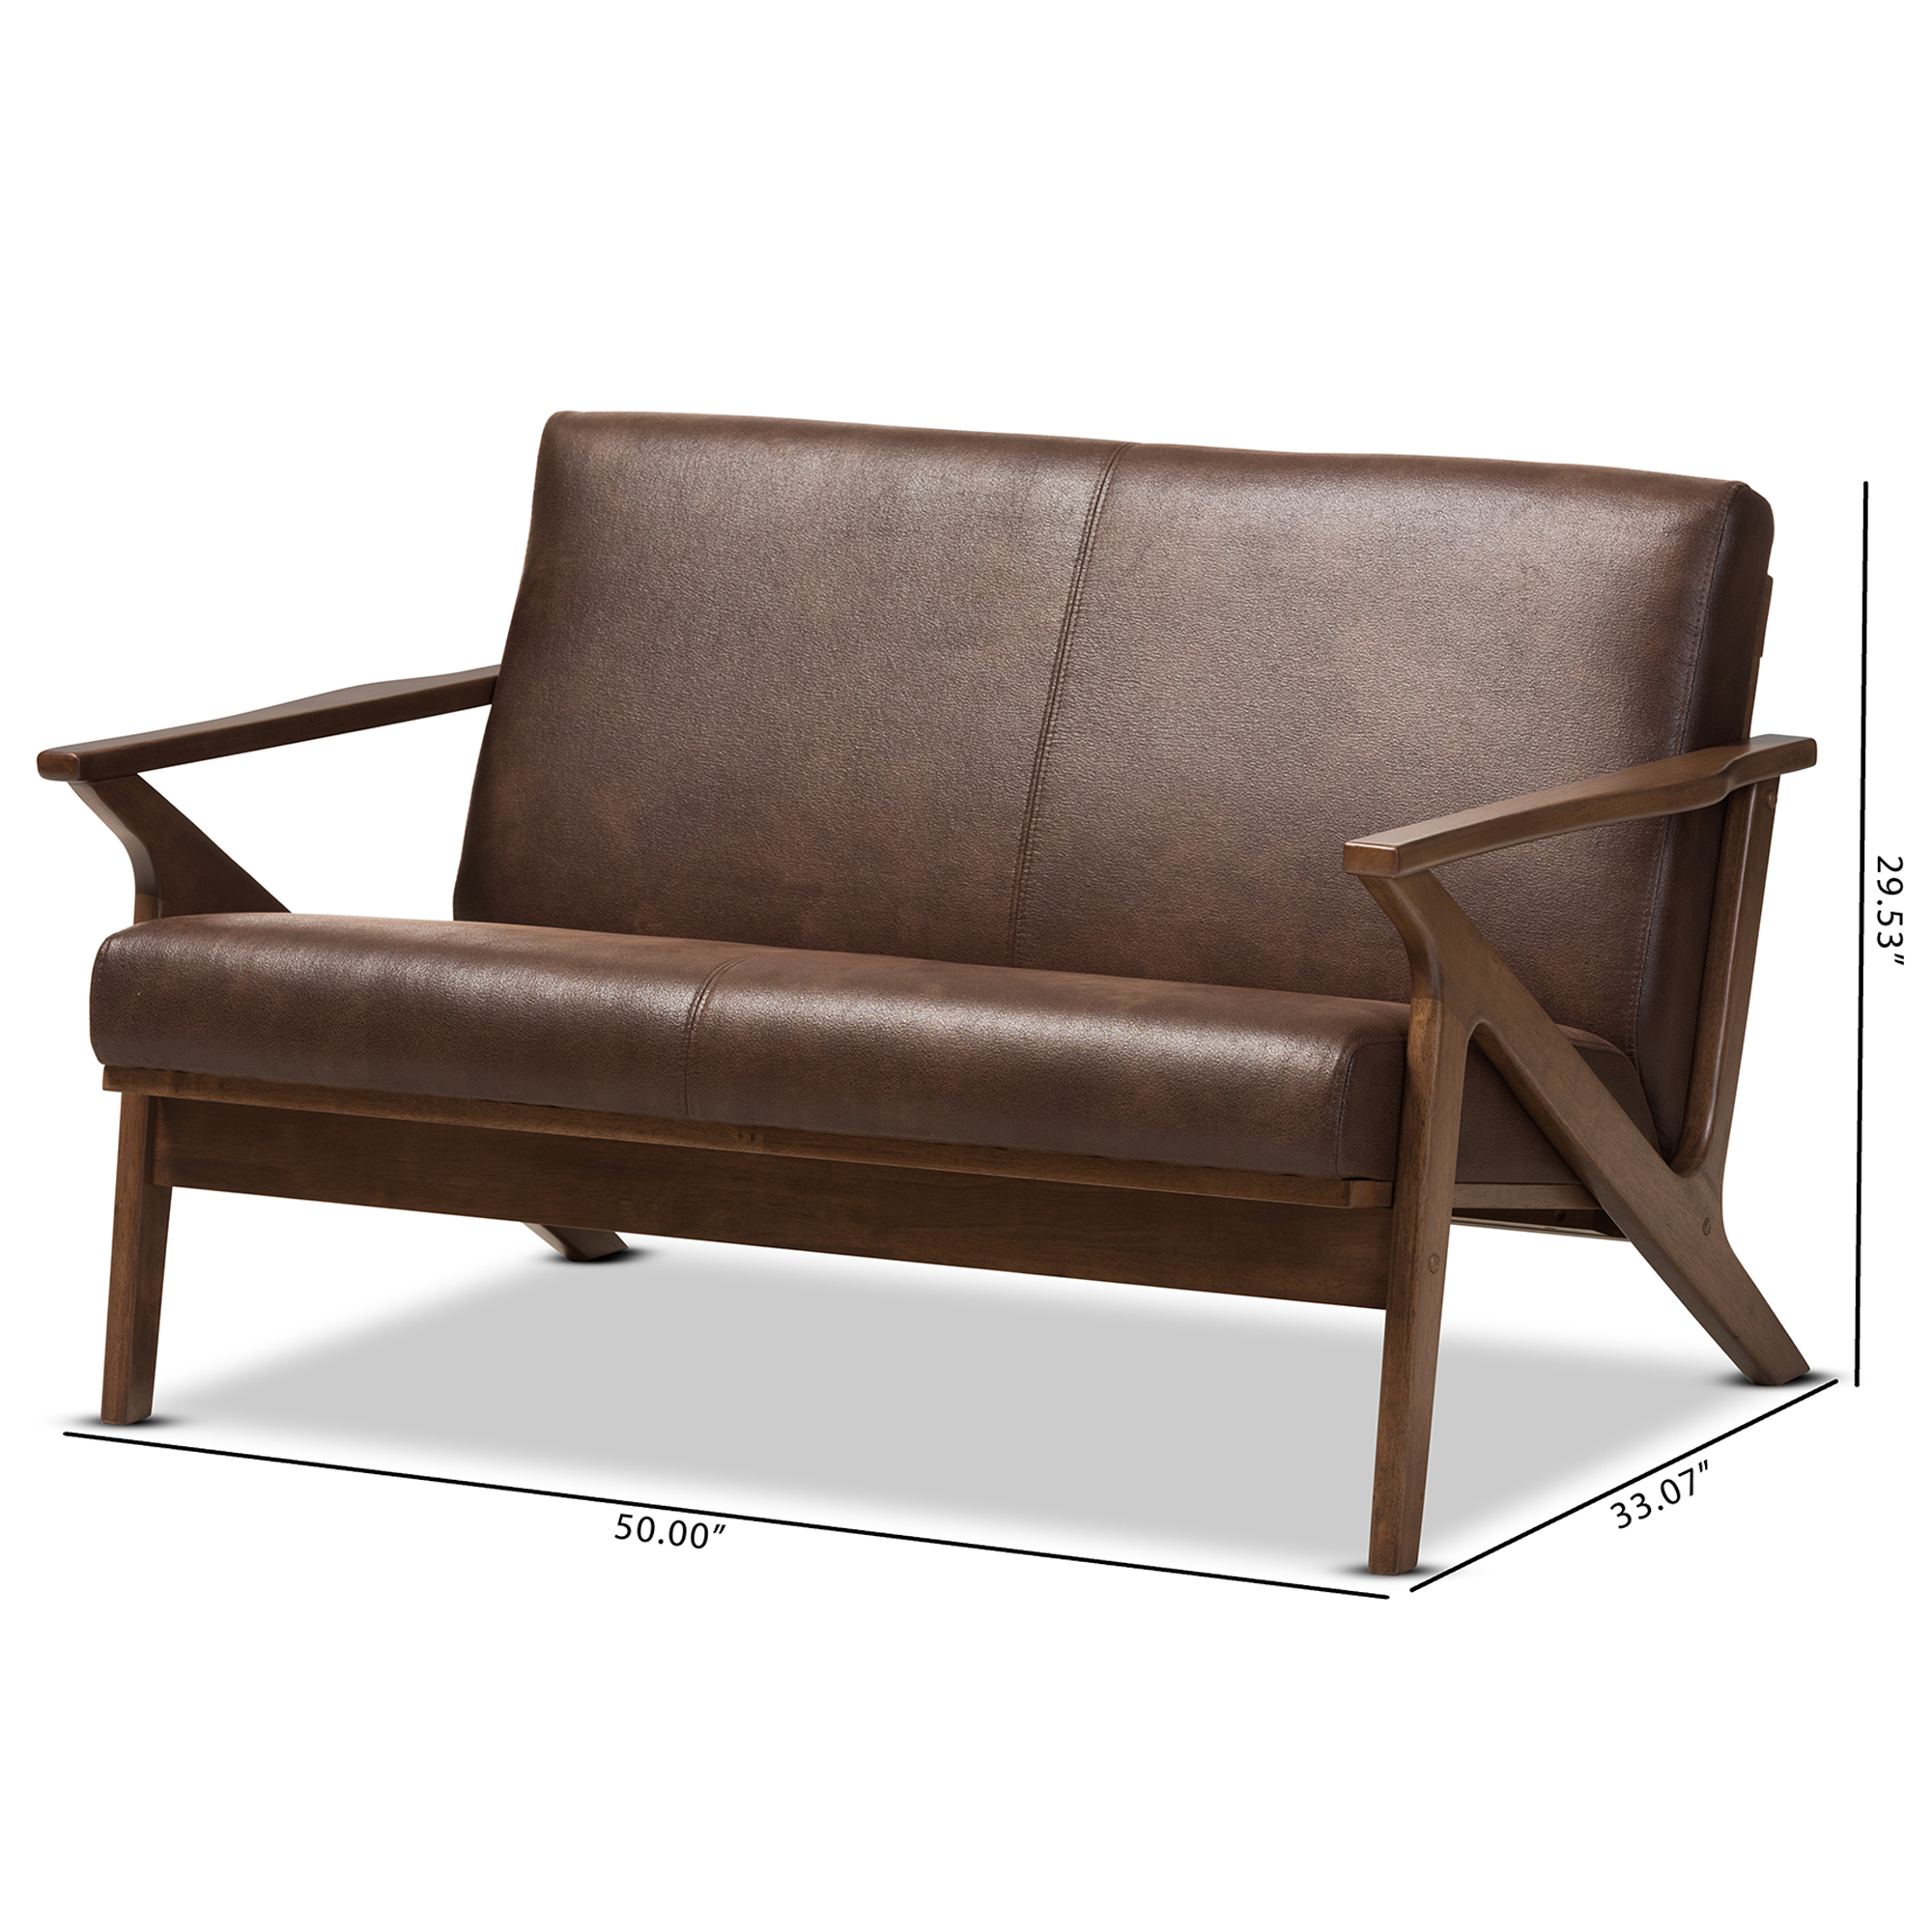 Retro Sofa Wood Baxton Studio Bianca Mid Century Modern Walnut Wood Dark Brown Distressed Faux Leather 2 Seater Loveseat